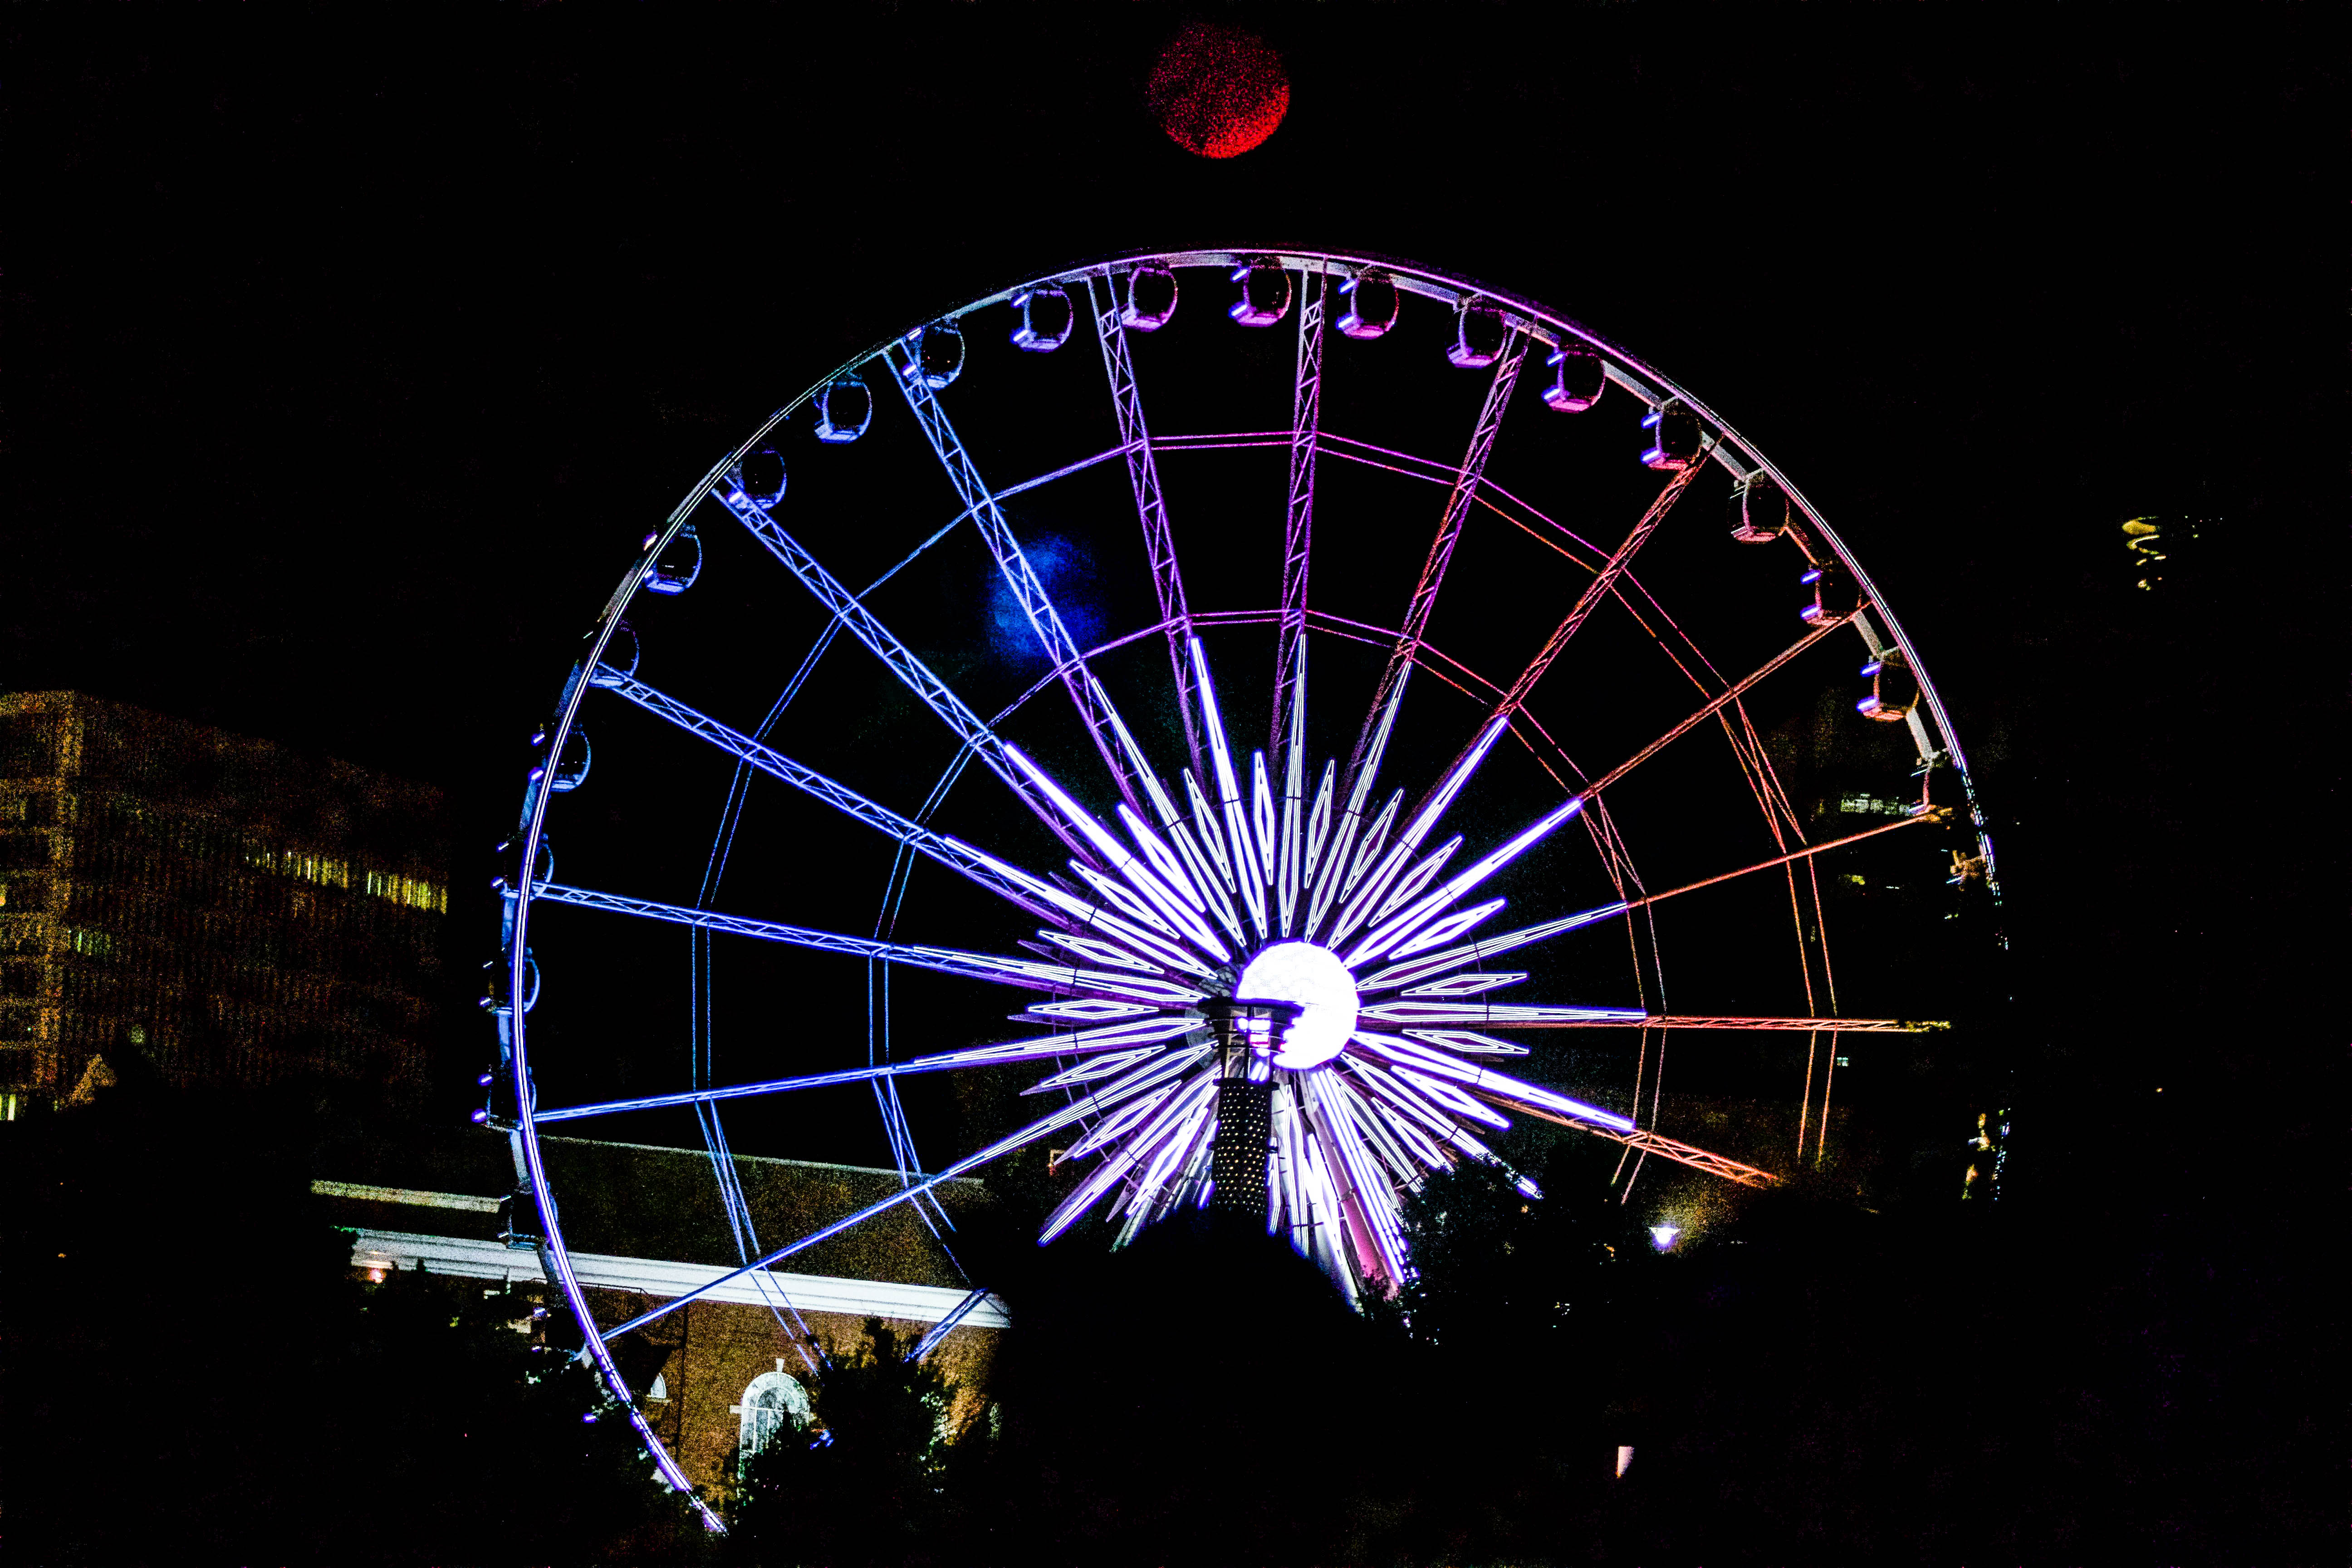 Ferris-Wheel_ShakyKnees_KO_05132017_1